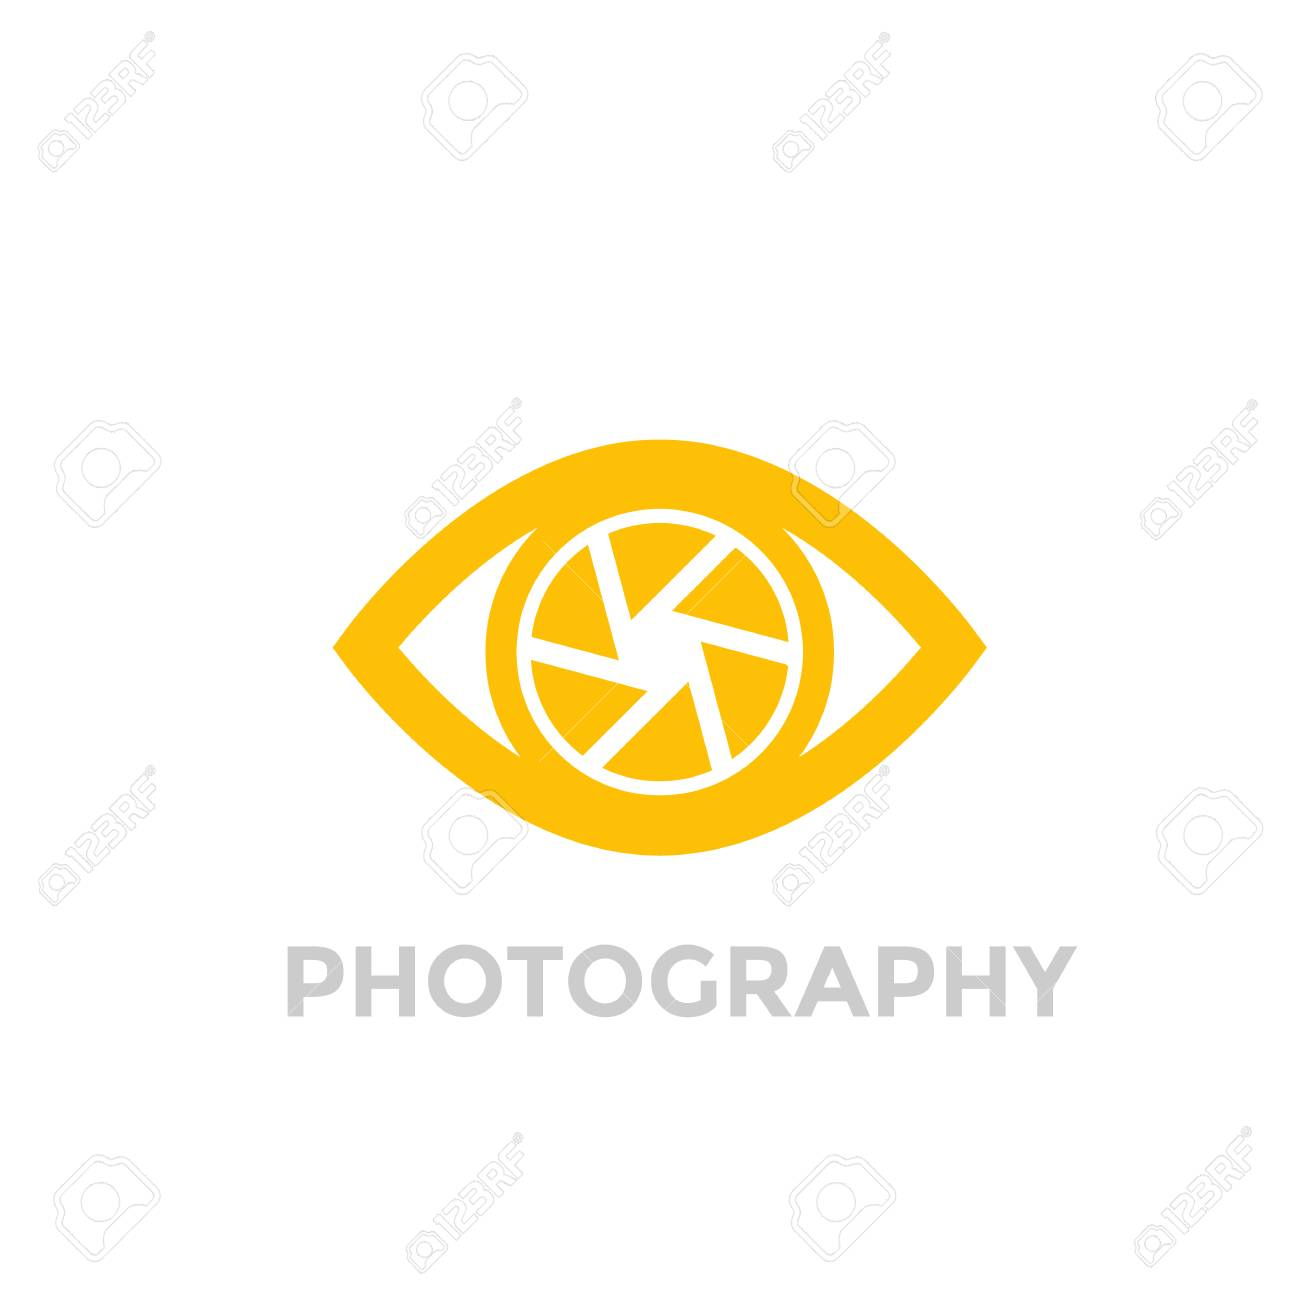 eye with aperture symbol, photography vector logo - 89552973